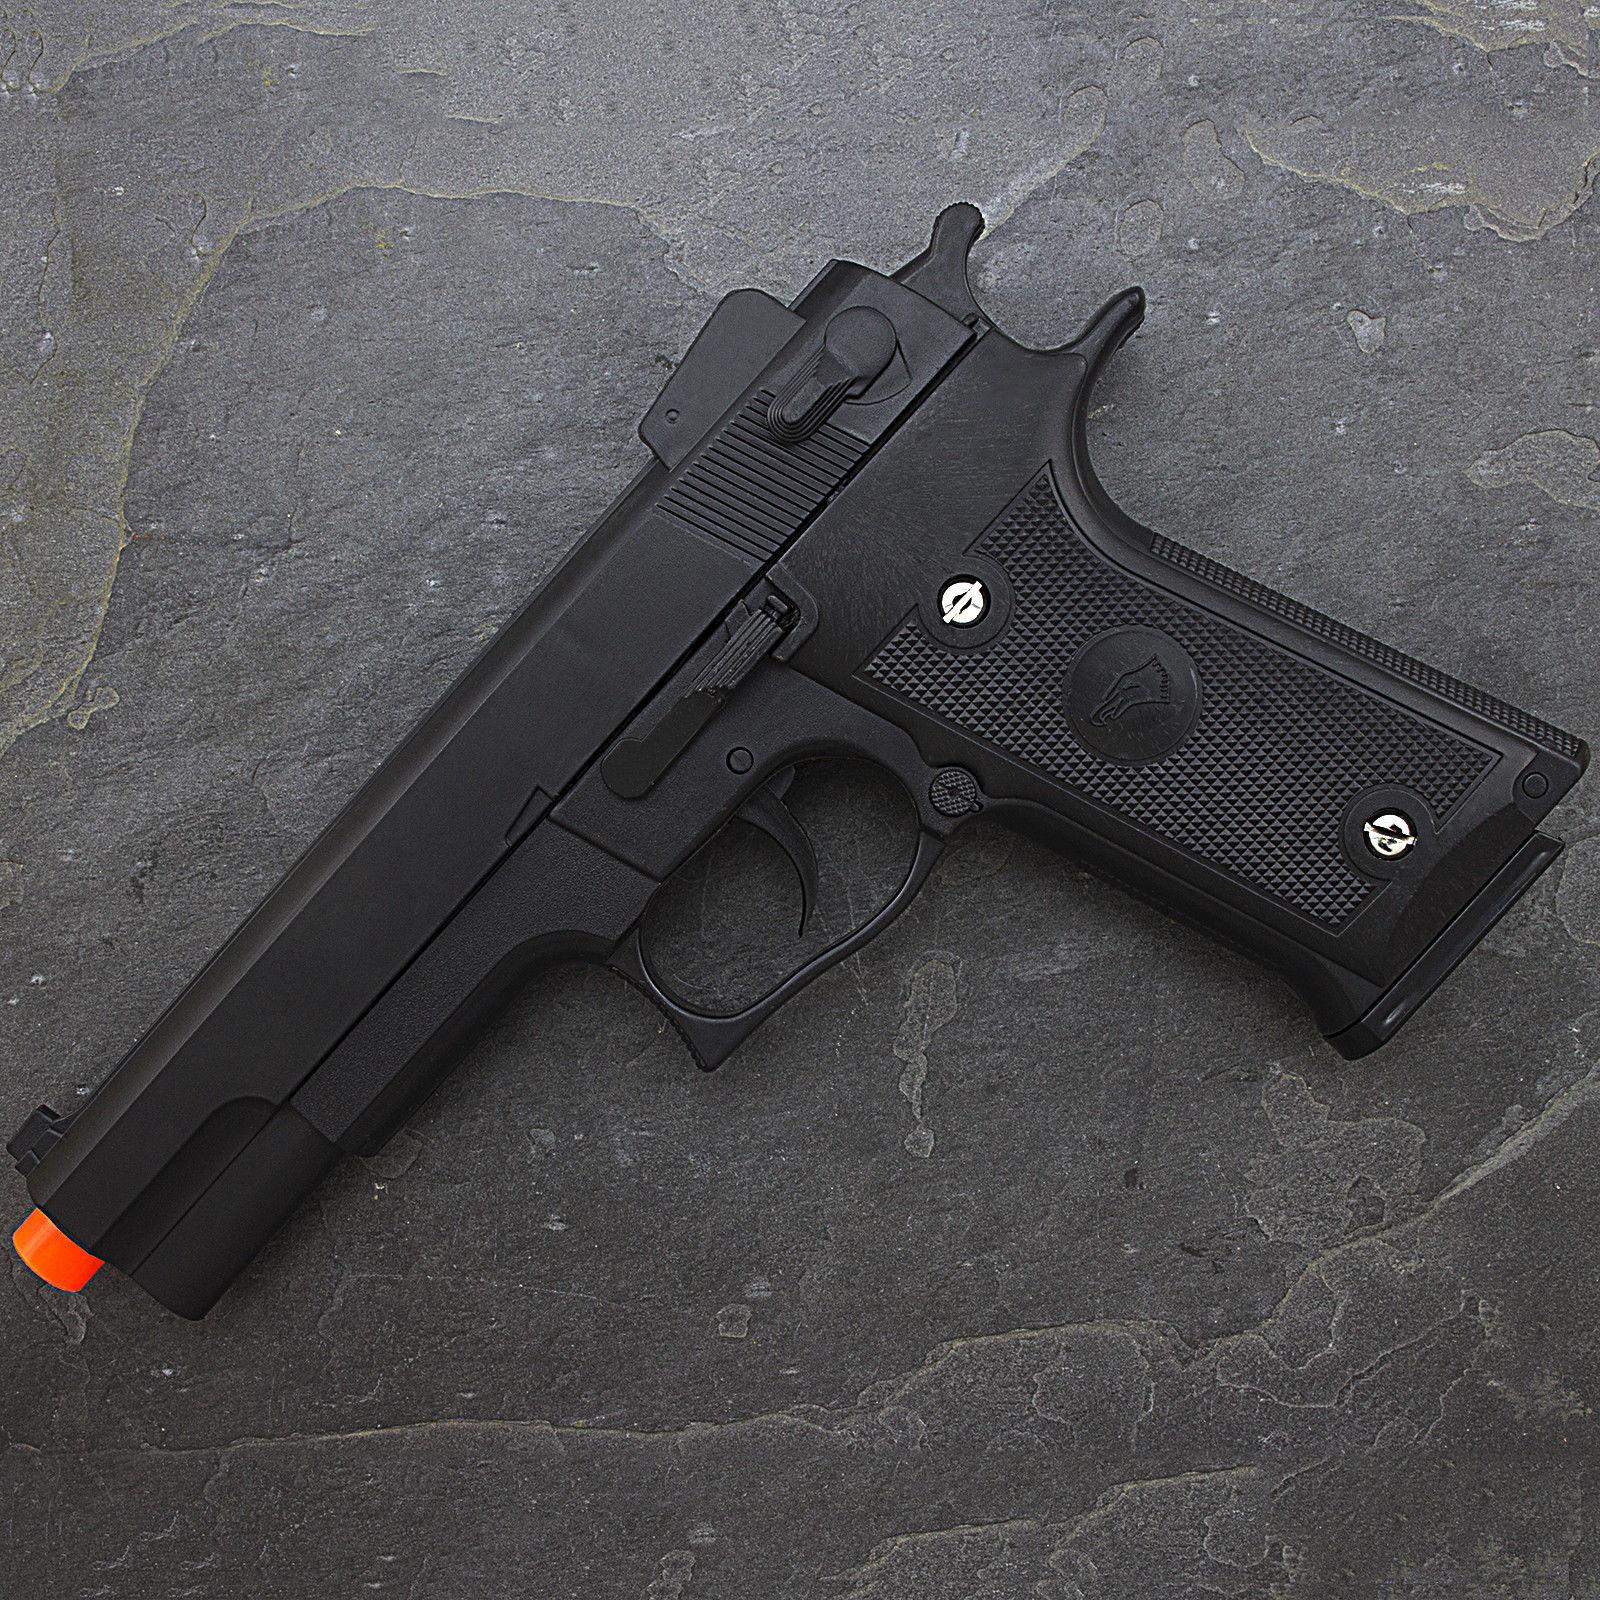 2019 DOUBLE EAGLE M1911 SPRING AIRSOFT HAND GUN PISTOL 6mm